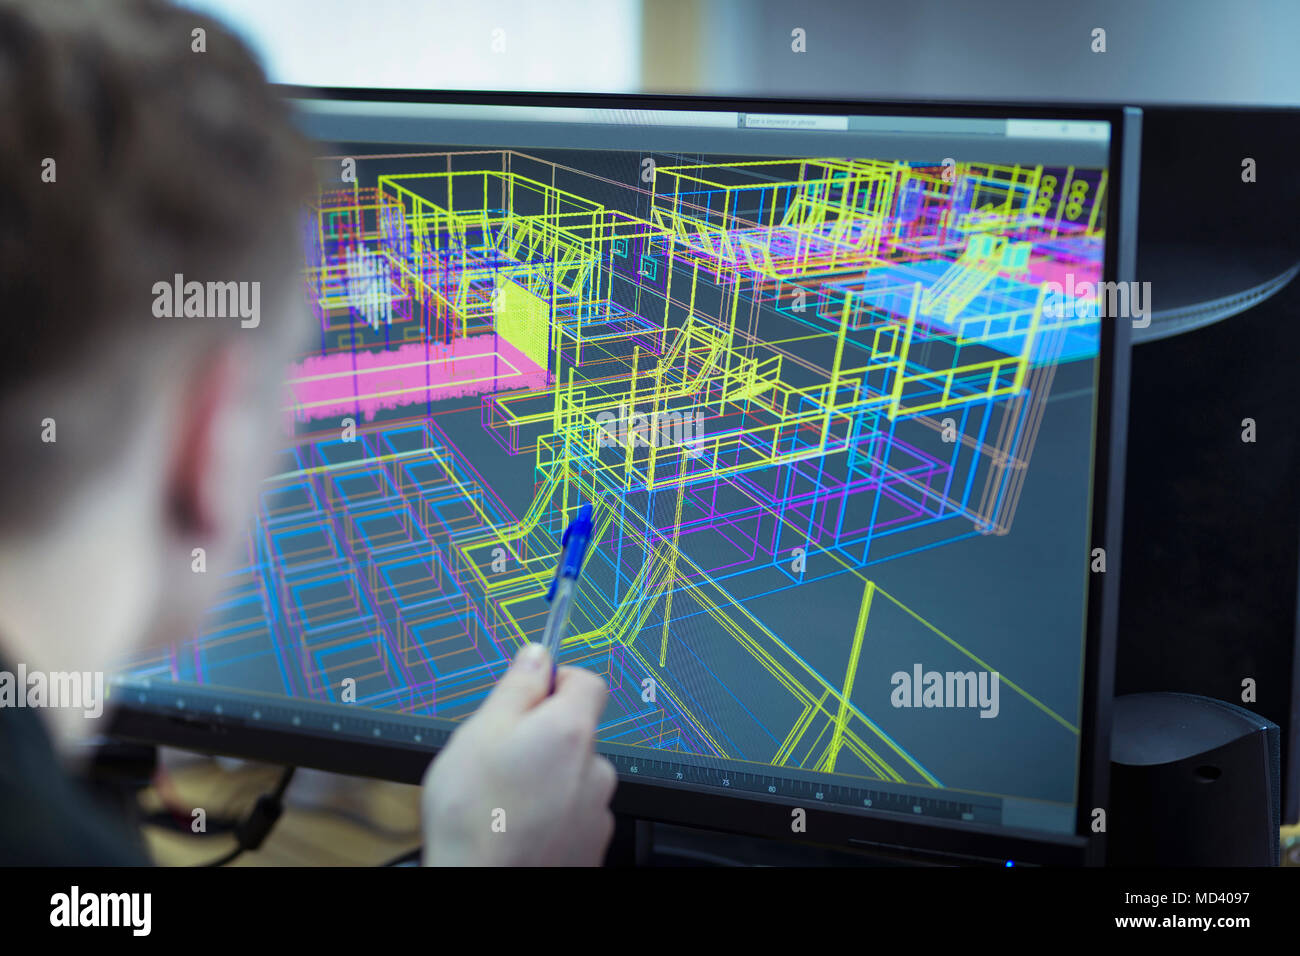 Worker looking at CAD wireframe industrial design on screen - Stock Image